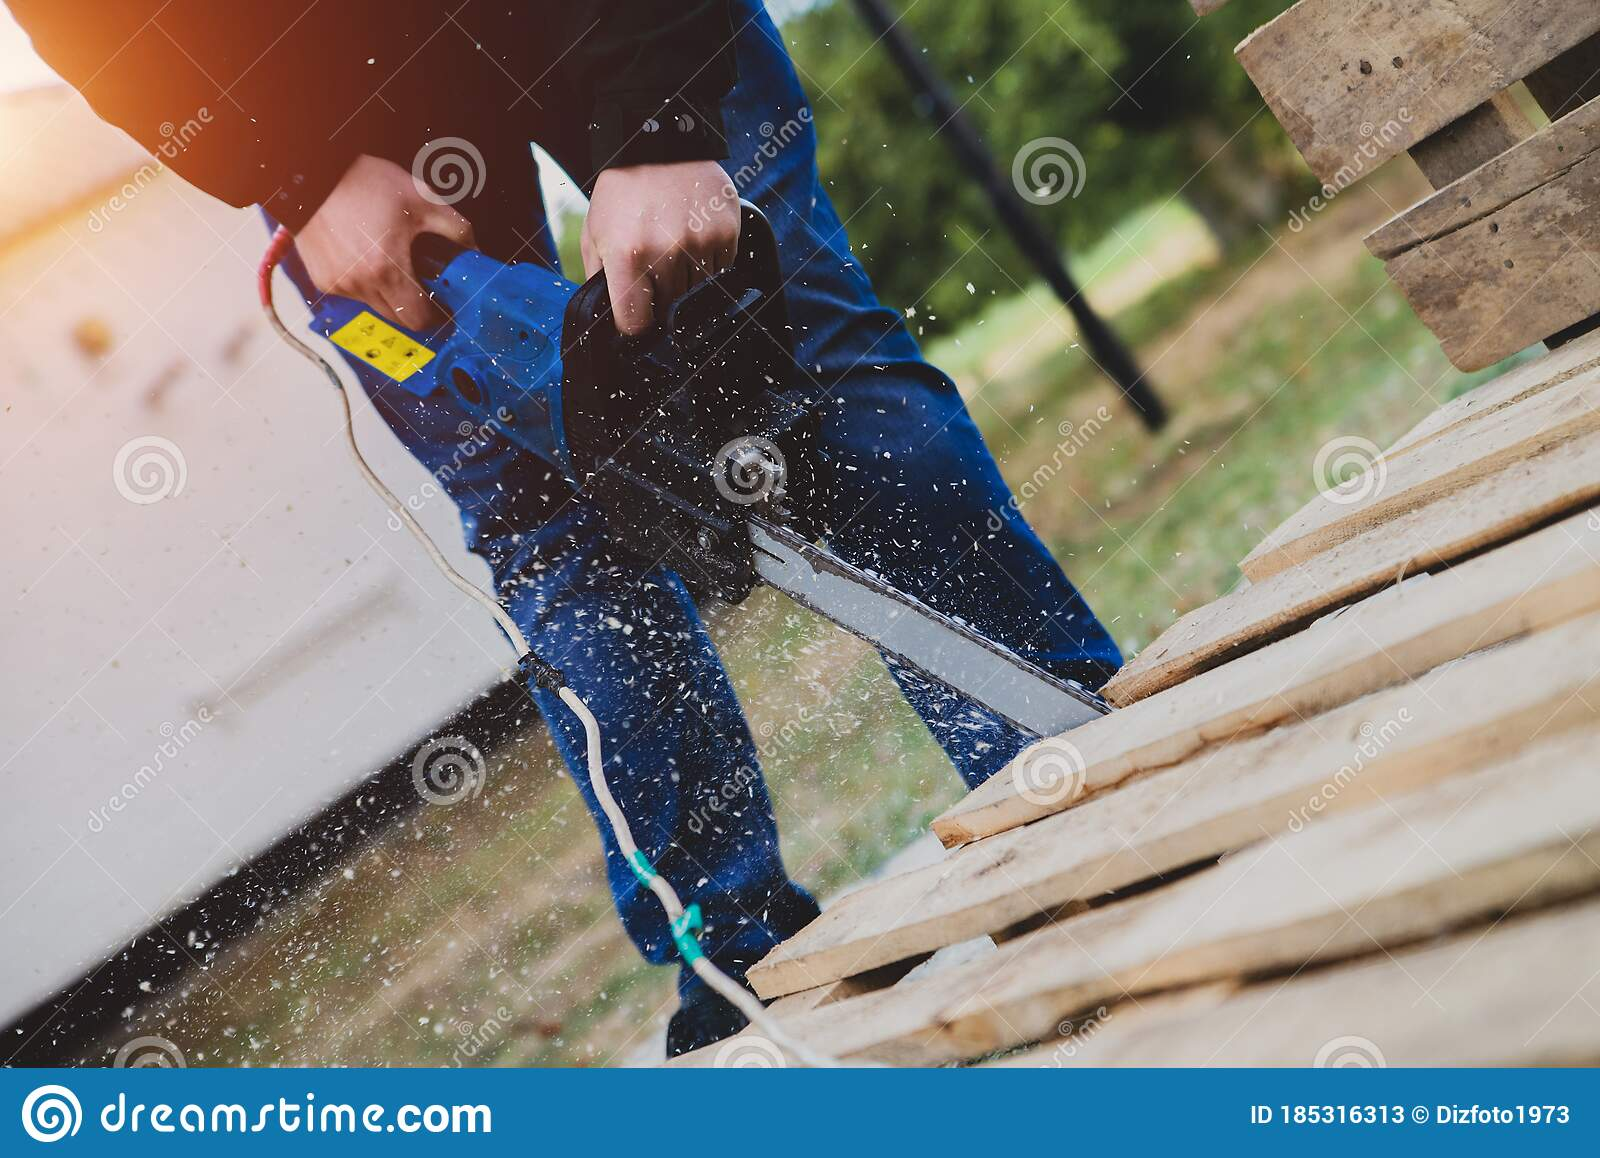 A Man Sawing A Wooden Pallet With A Chainsaw Making Outdoor Furniture From Pallets Stock Image Image Of Finishing Pallets 185316313